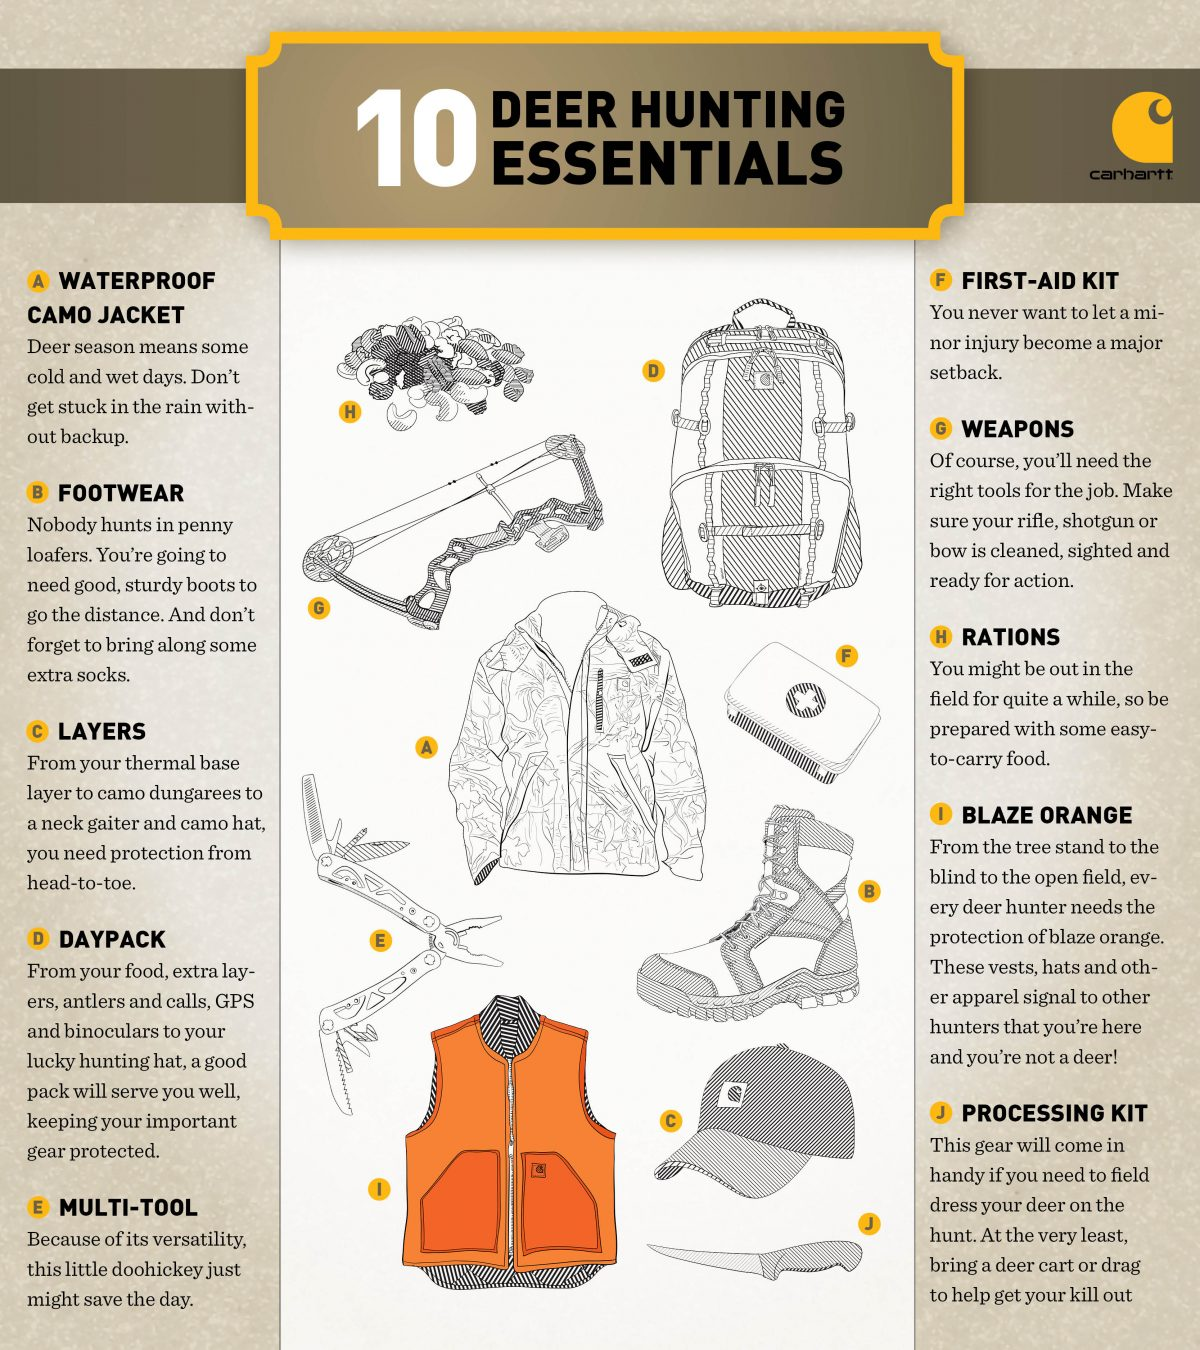 Carhartt deer hunting infographic